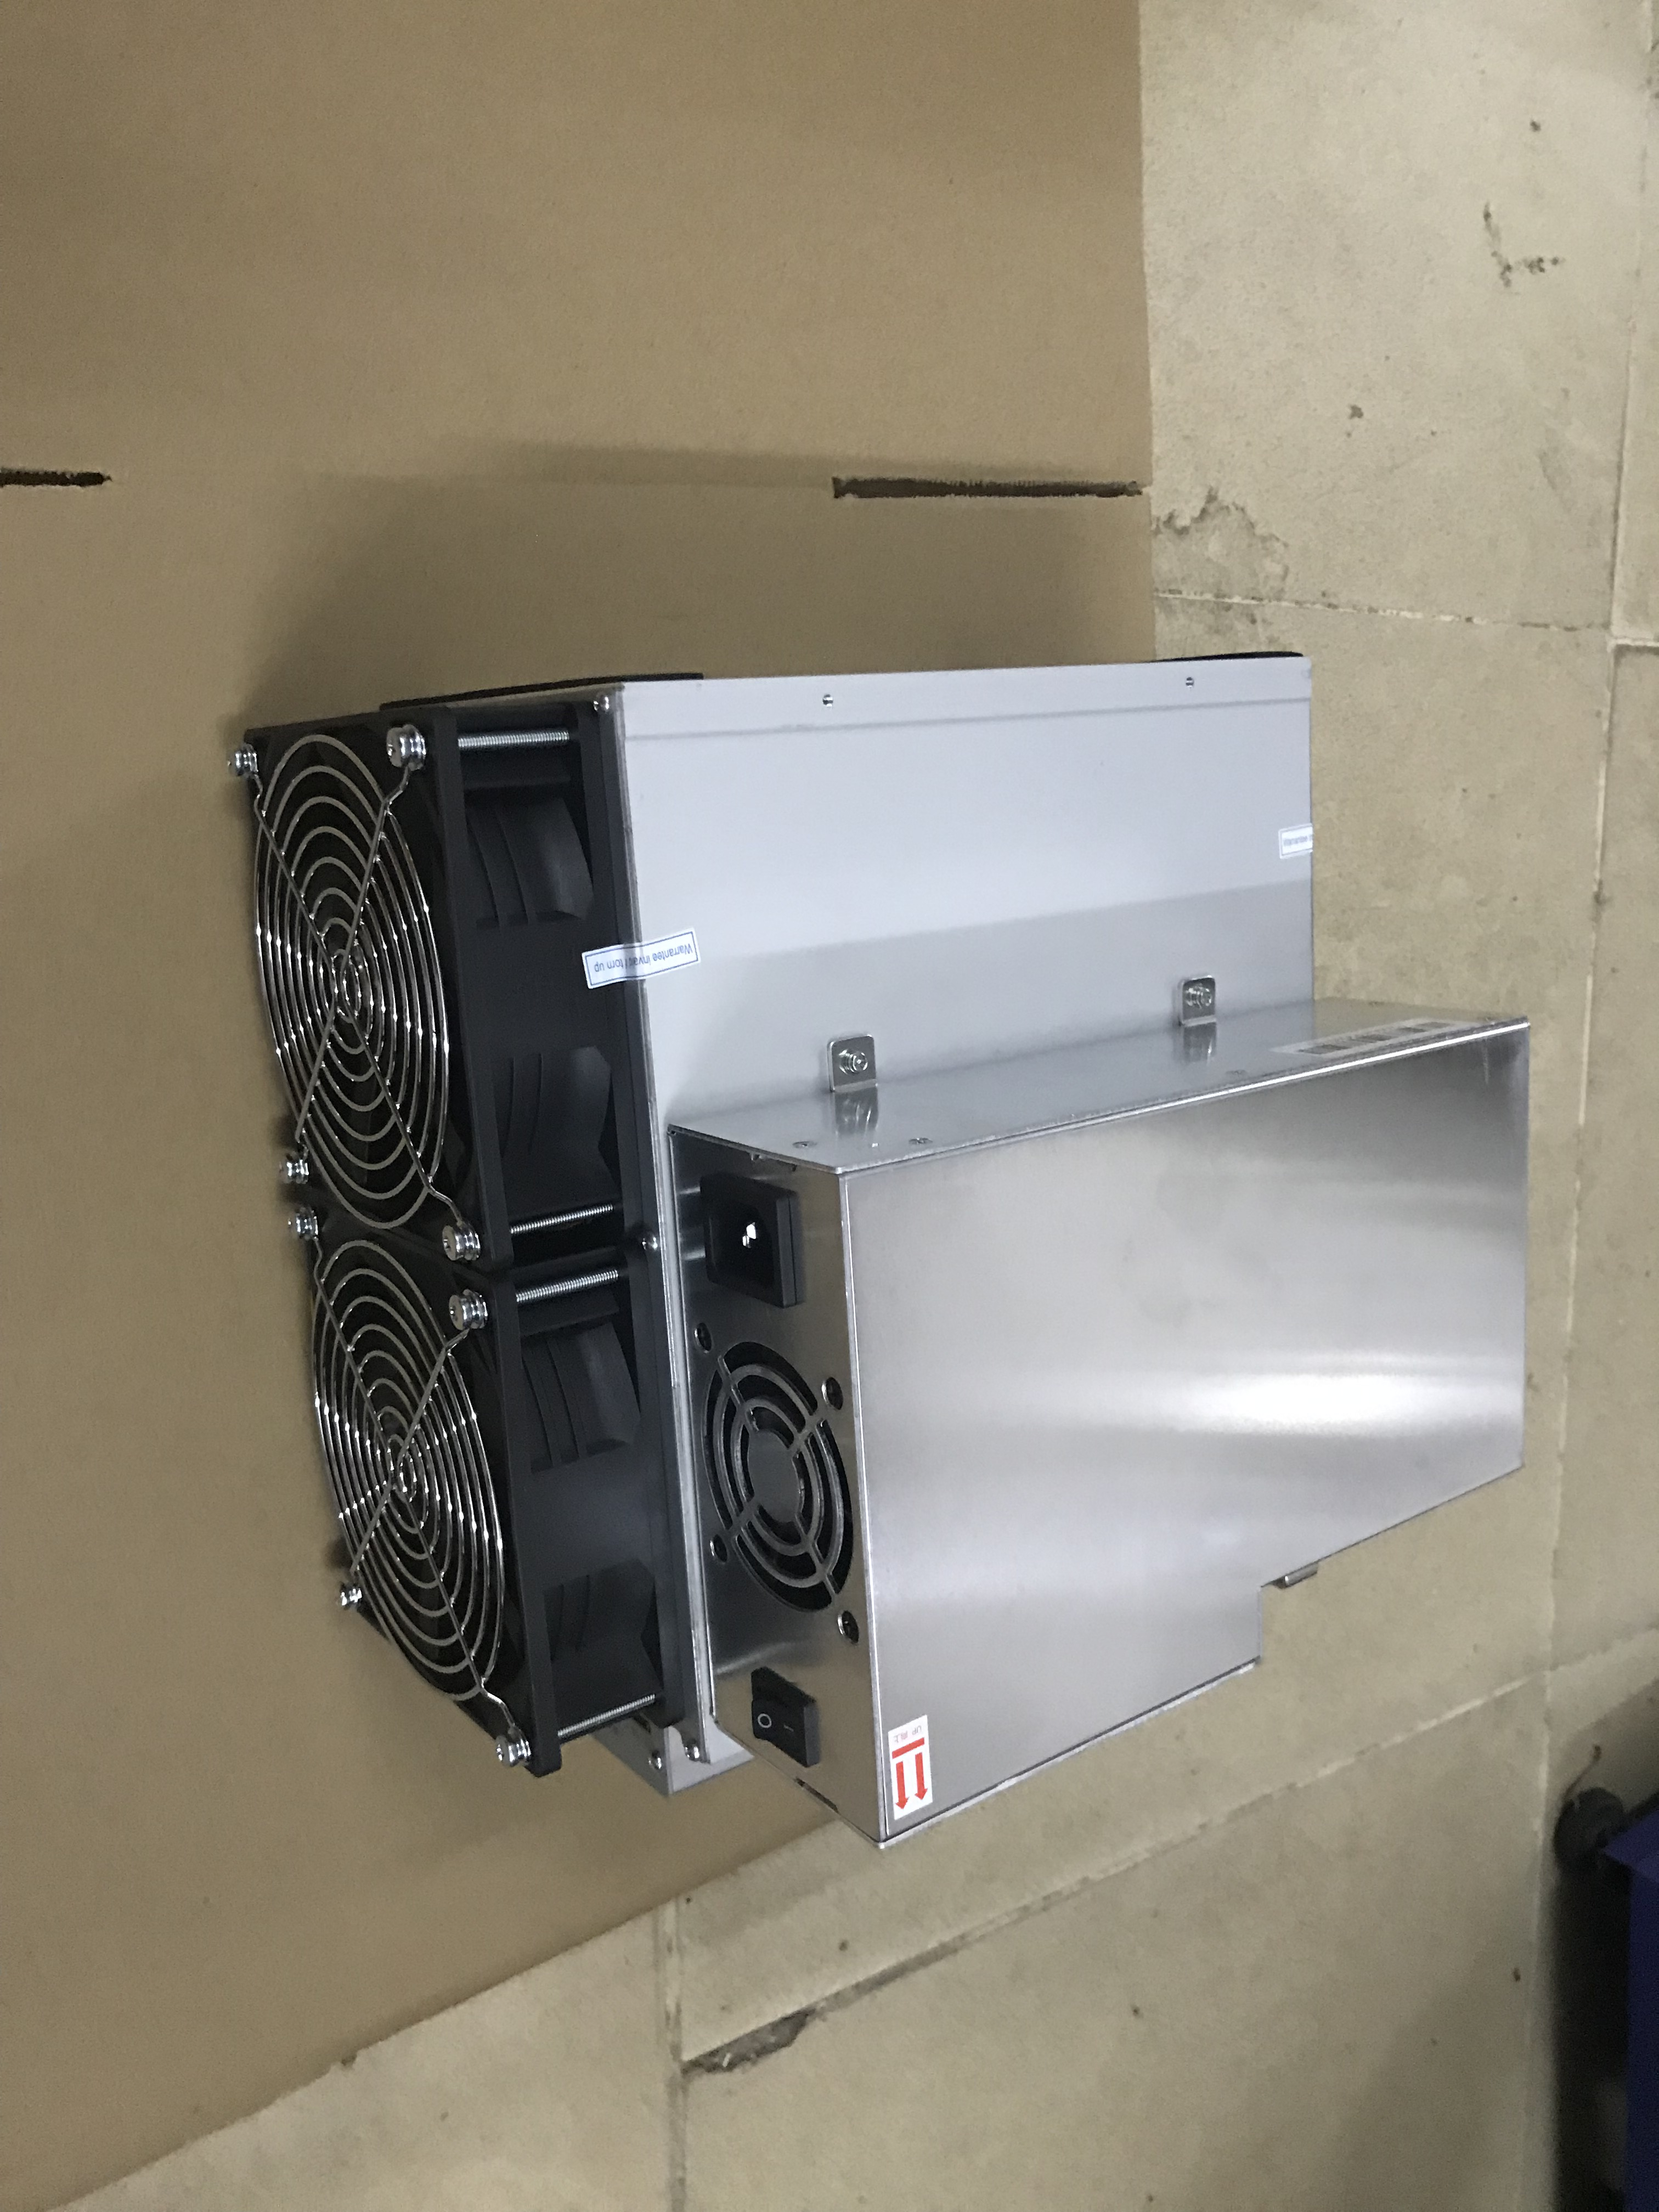 Купить с кэшбэком The Newest BTC Miner INNOSILICON Turbo  T2T  26TH/s Bitcoin Miner SHA256 With PSU Better Than Antminer S9 S11 S15 S17 T9+ T15 T1